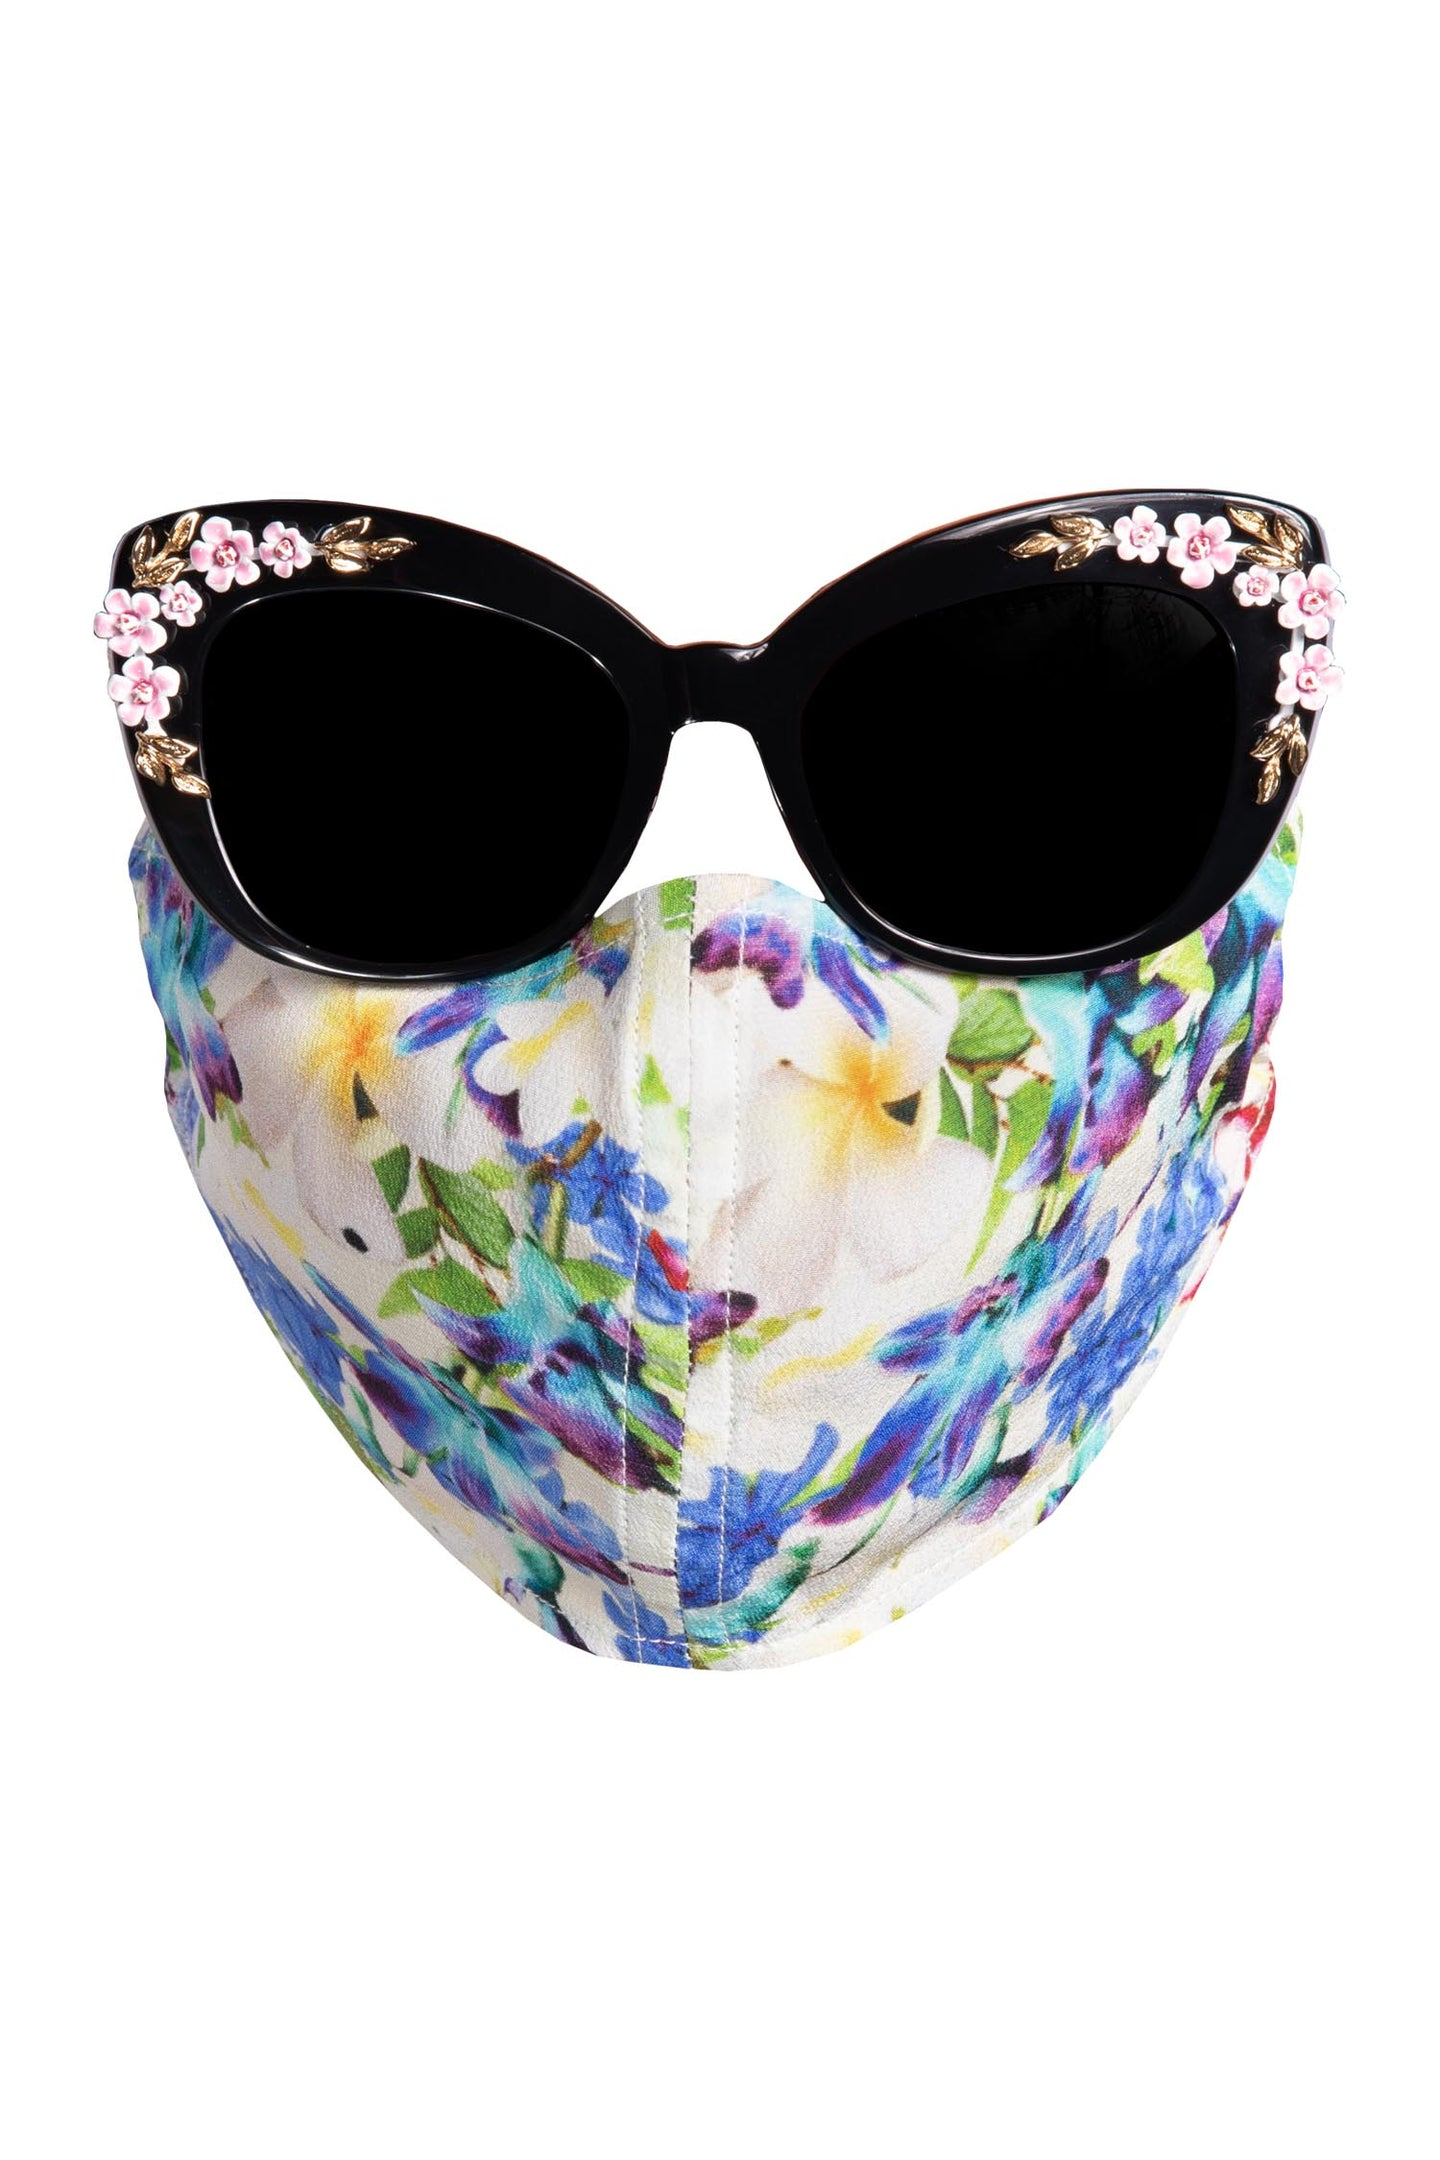 Silk Face Mask - Multi Fleurs